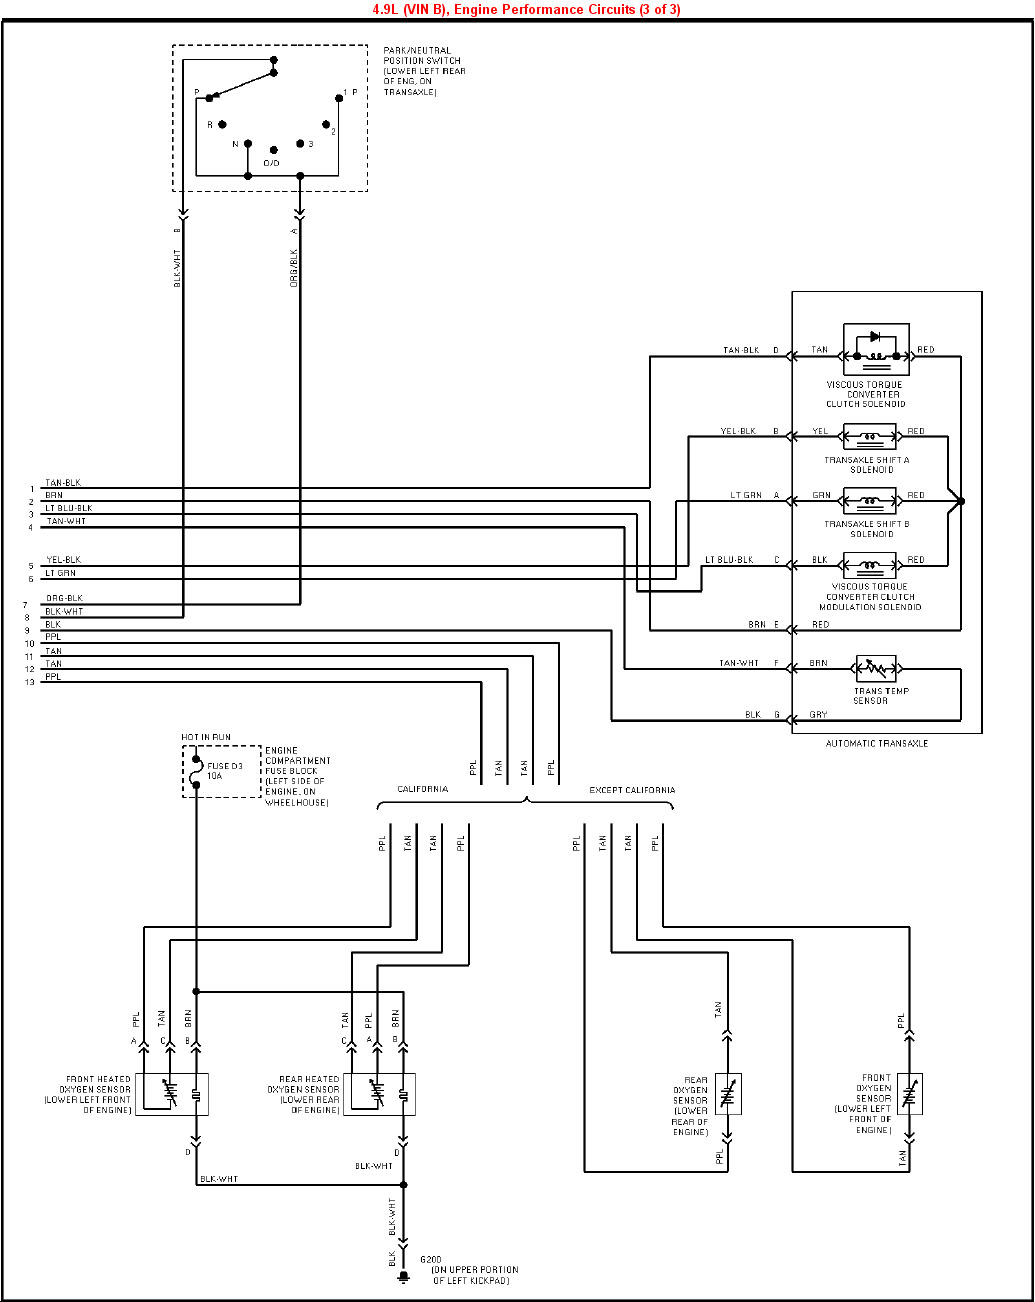 1995 Cadillac Deville 4.9L VIN B PCM (3 of 3) index of gearhead efi wiring 1995 cadillac wiring diagrams at crackthecode.co